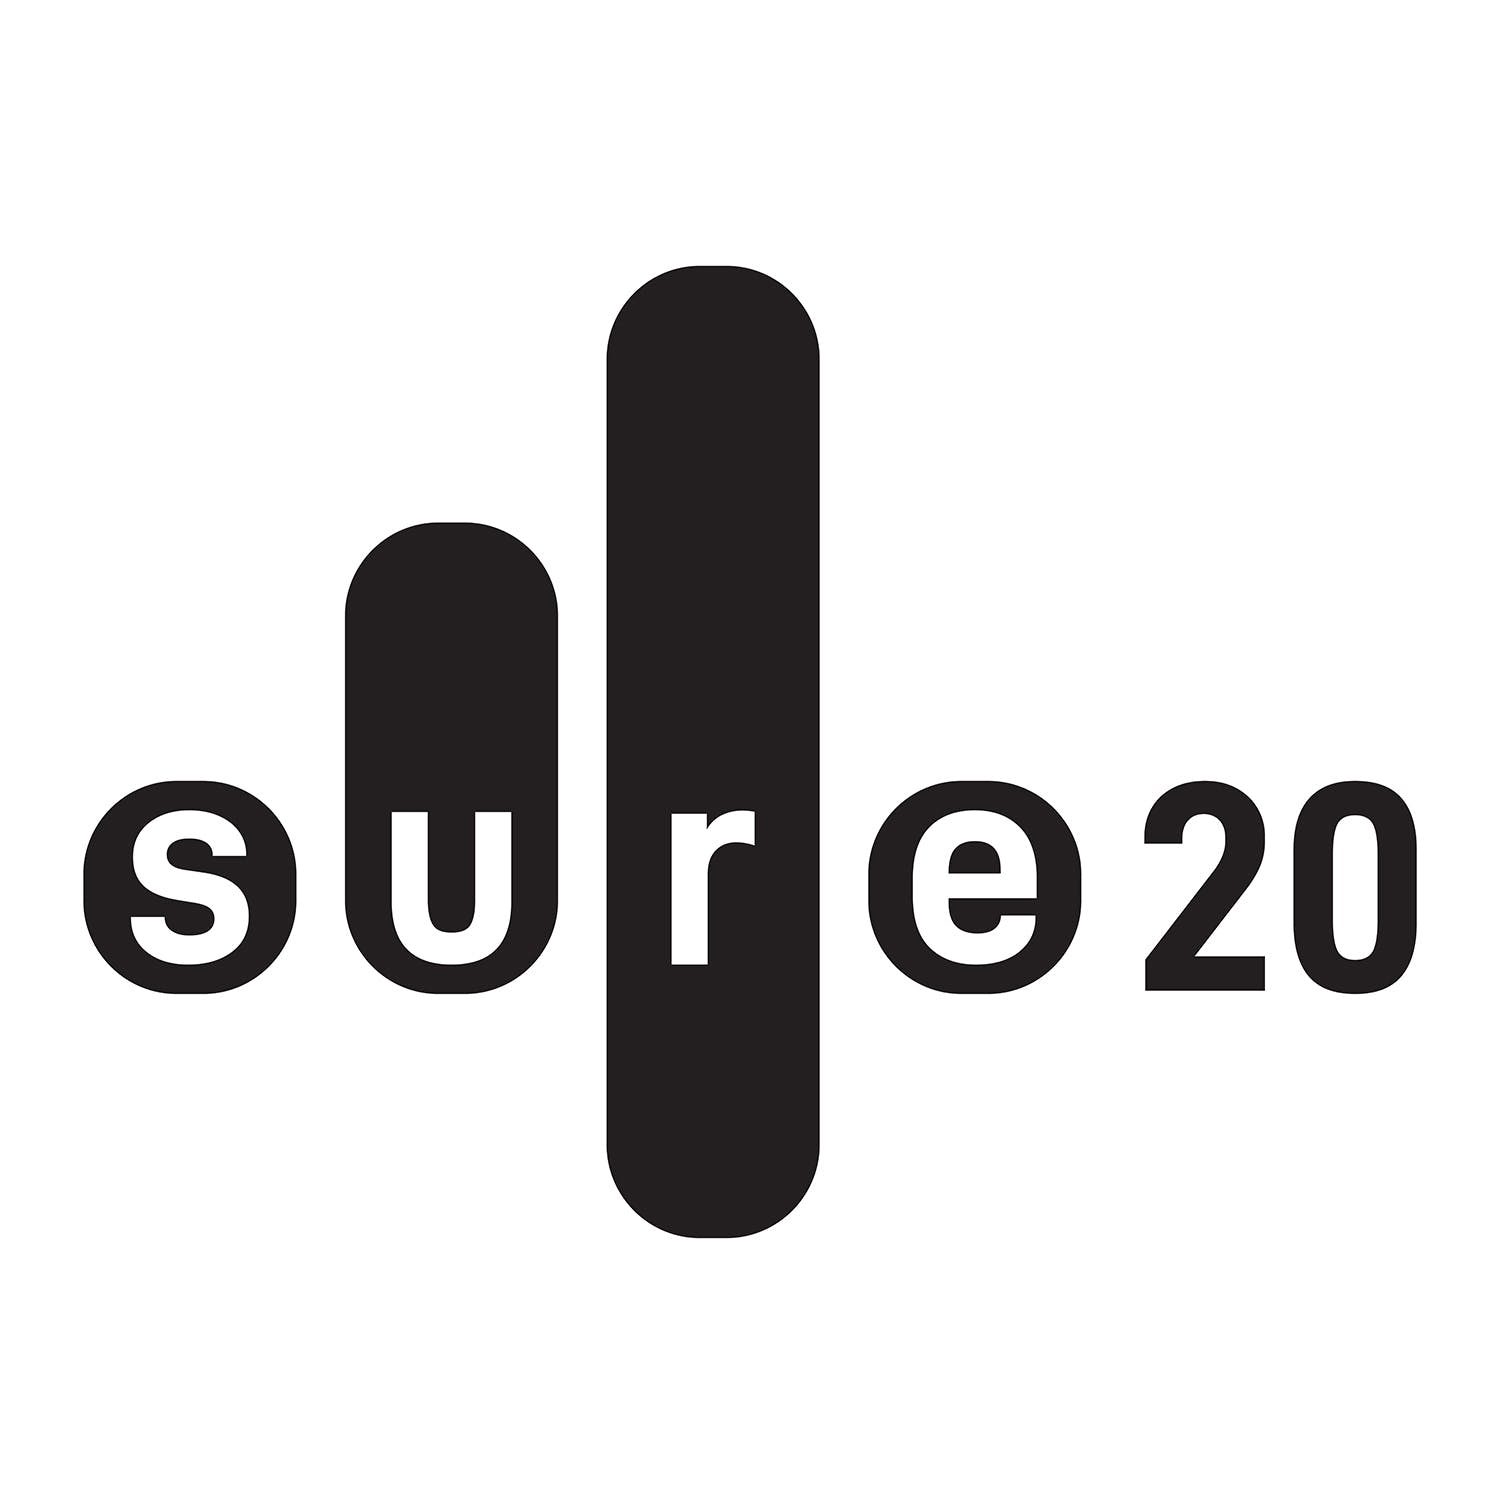 4sure20 - GRAND OPENING! - Medical Marijuana Doctors - Cannabizme.com